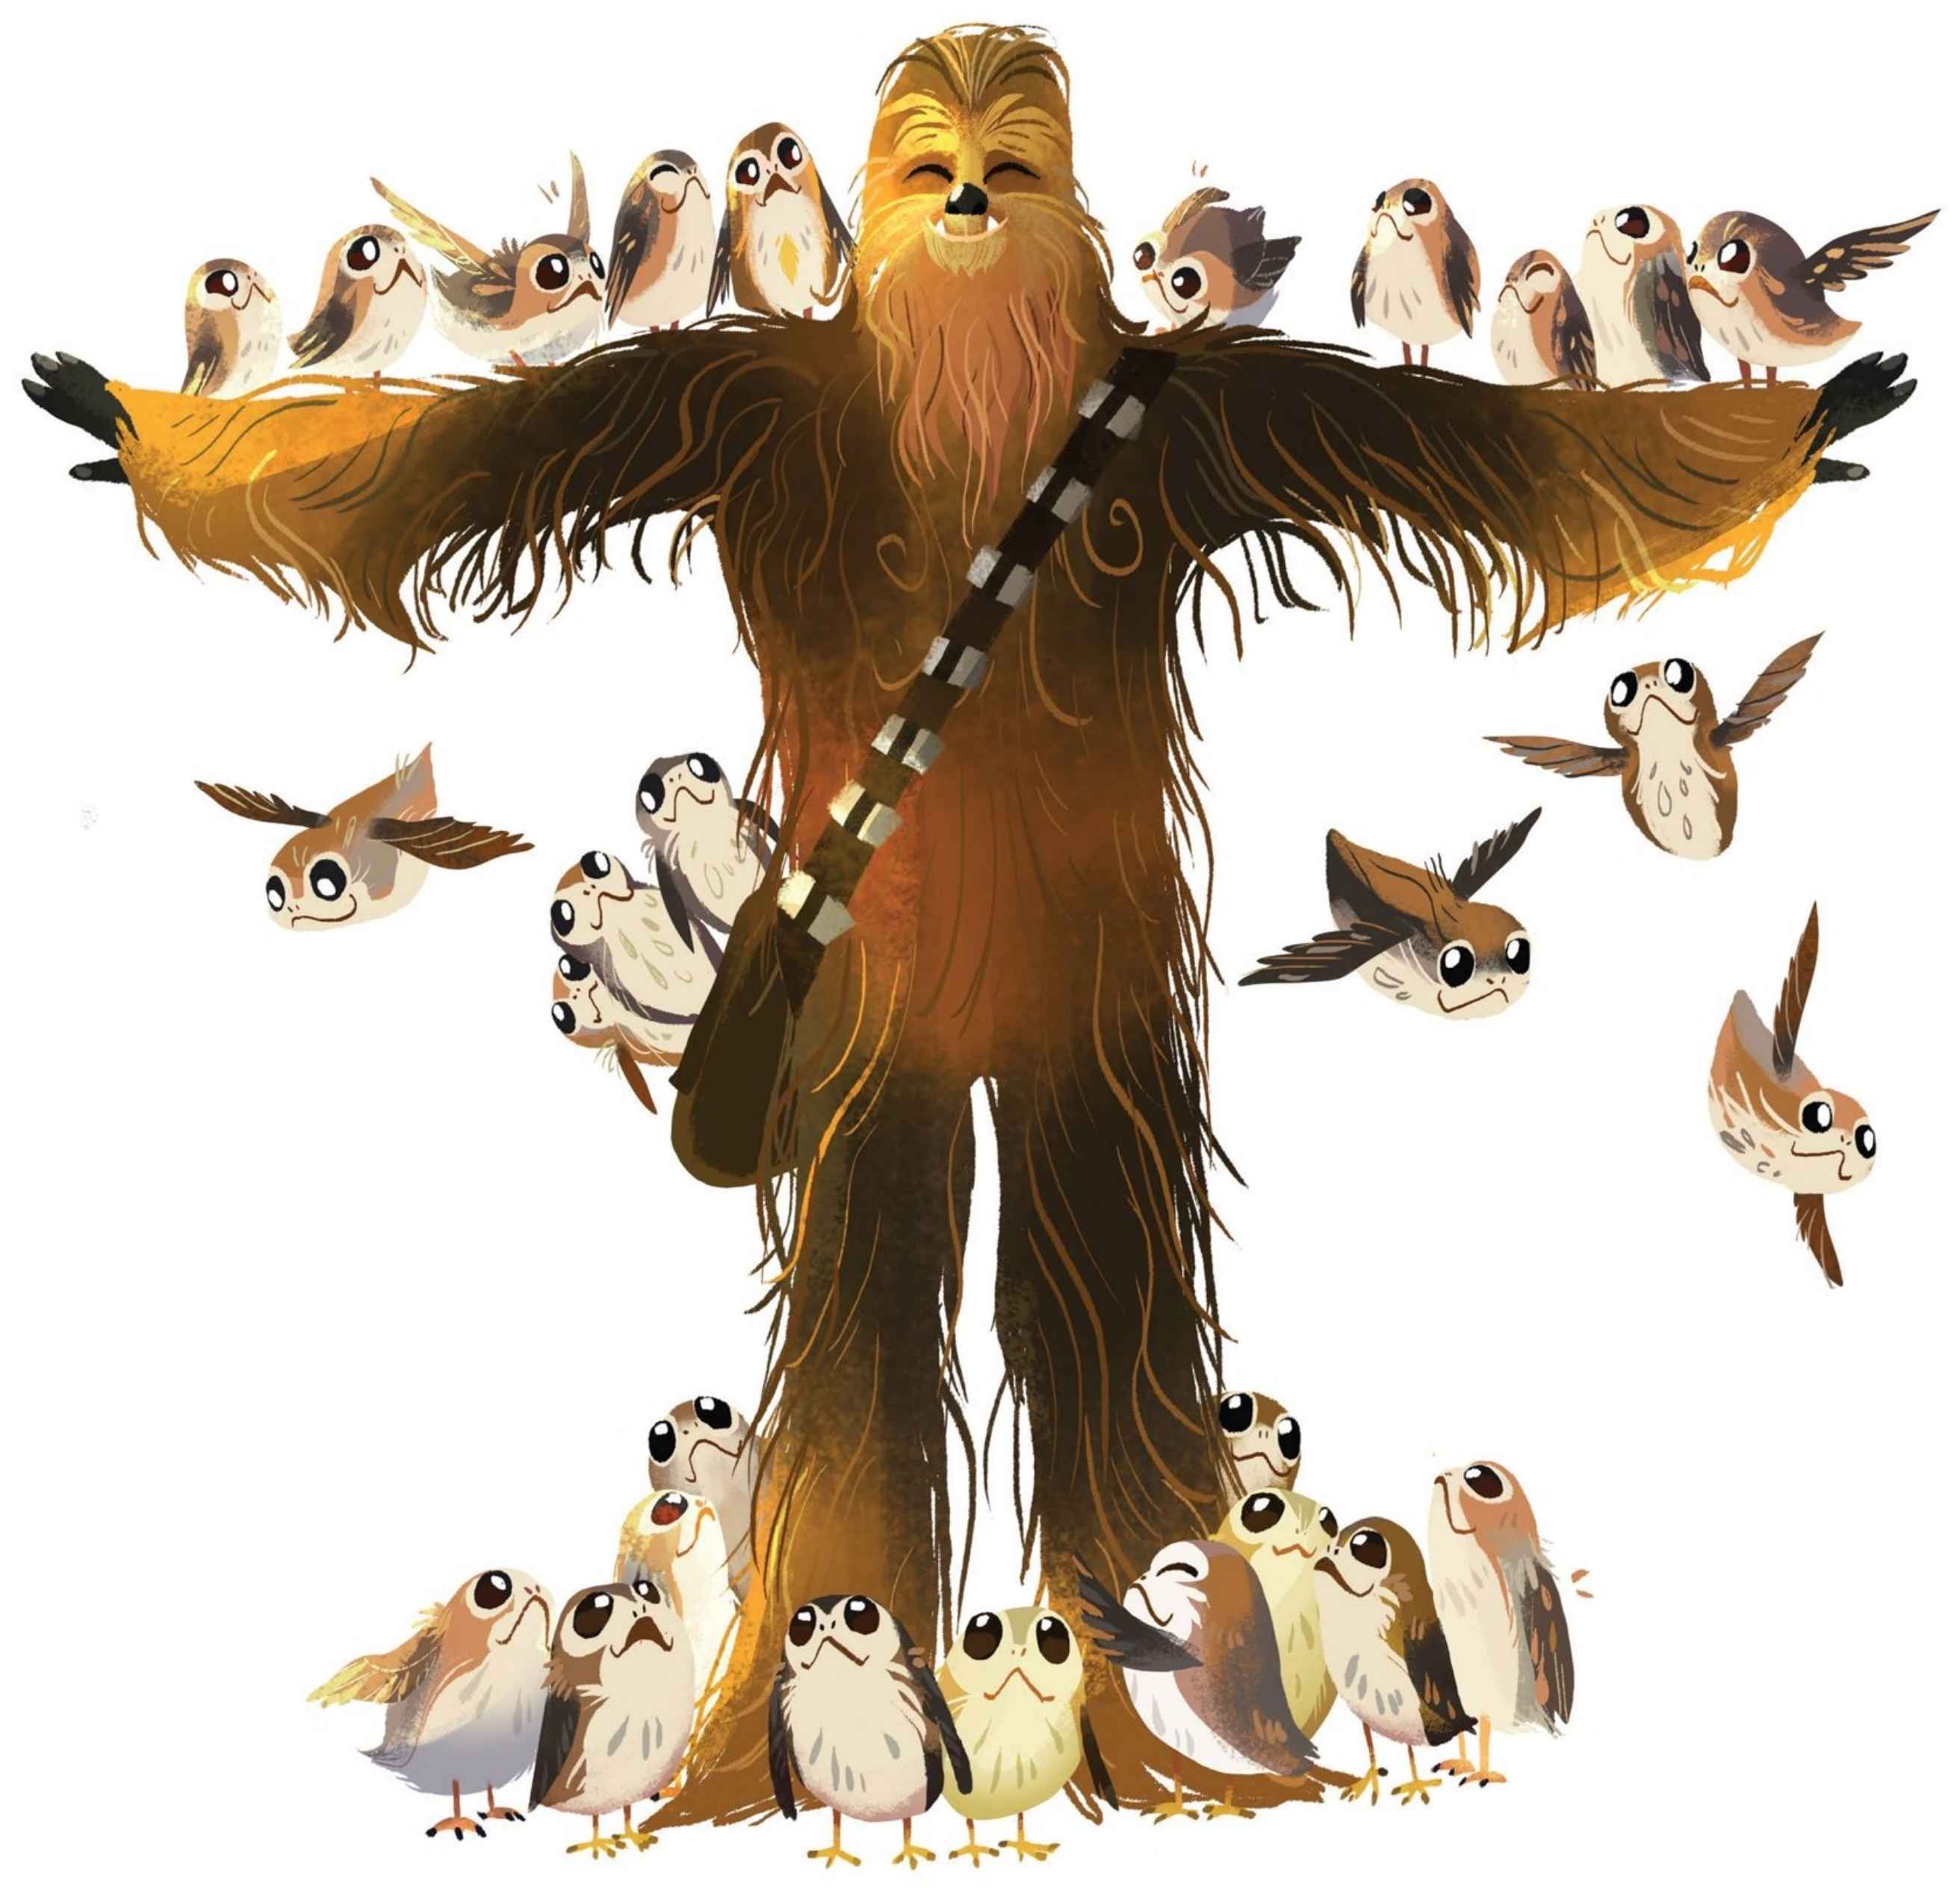 Chewie and the Porgs - Chewbacca with Porgs.jpg